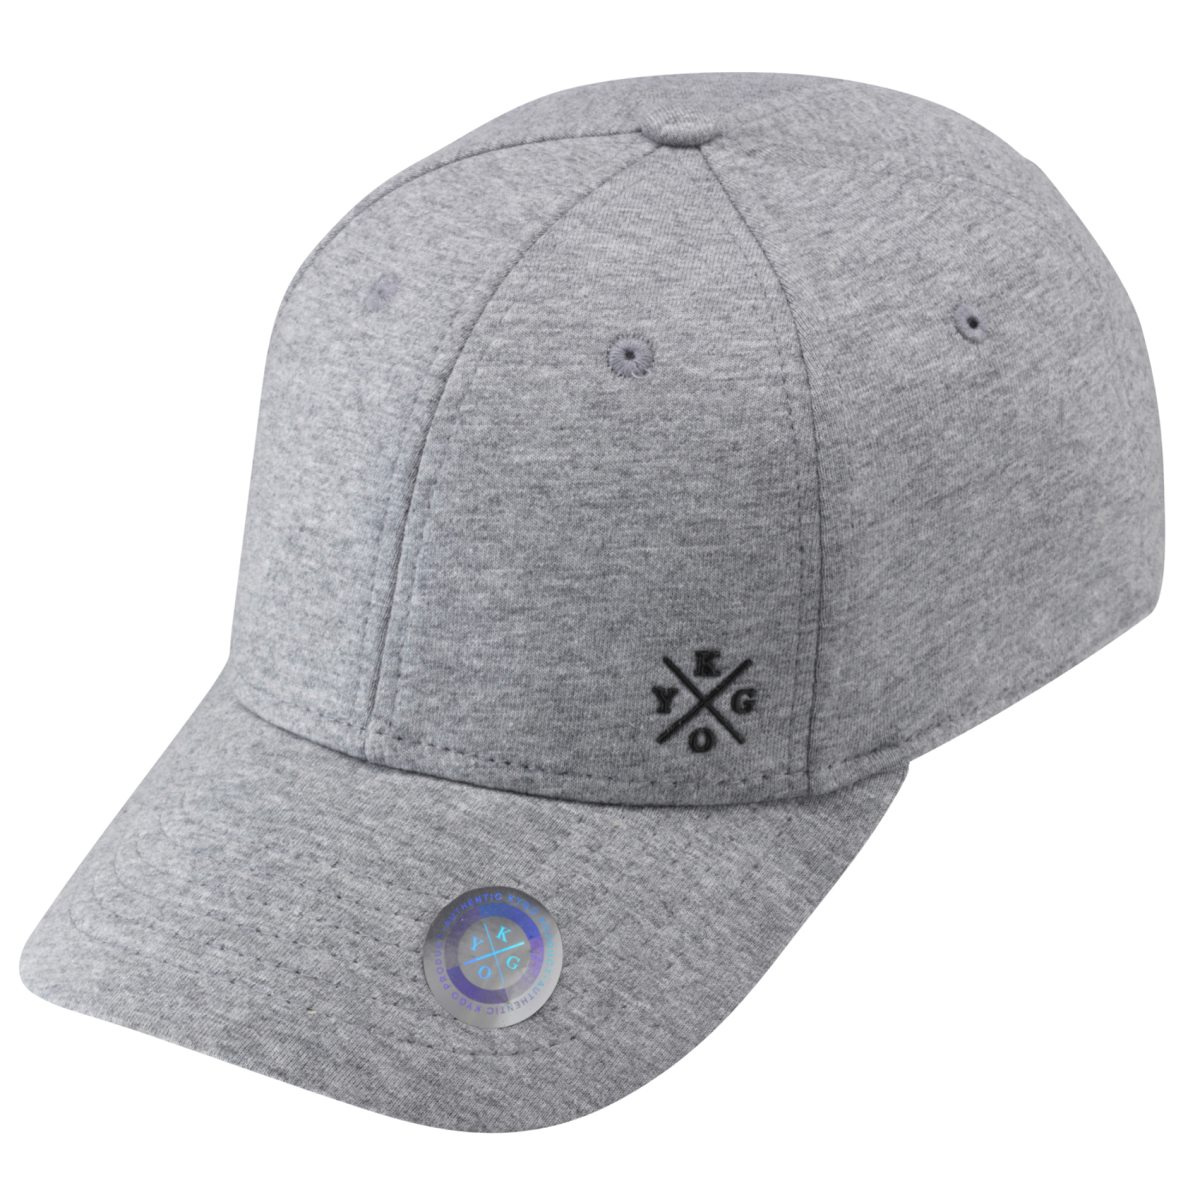 99663490748 Find every shop in the world selling kygo ibiza soundwave brim cap ...